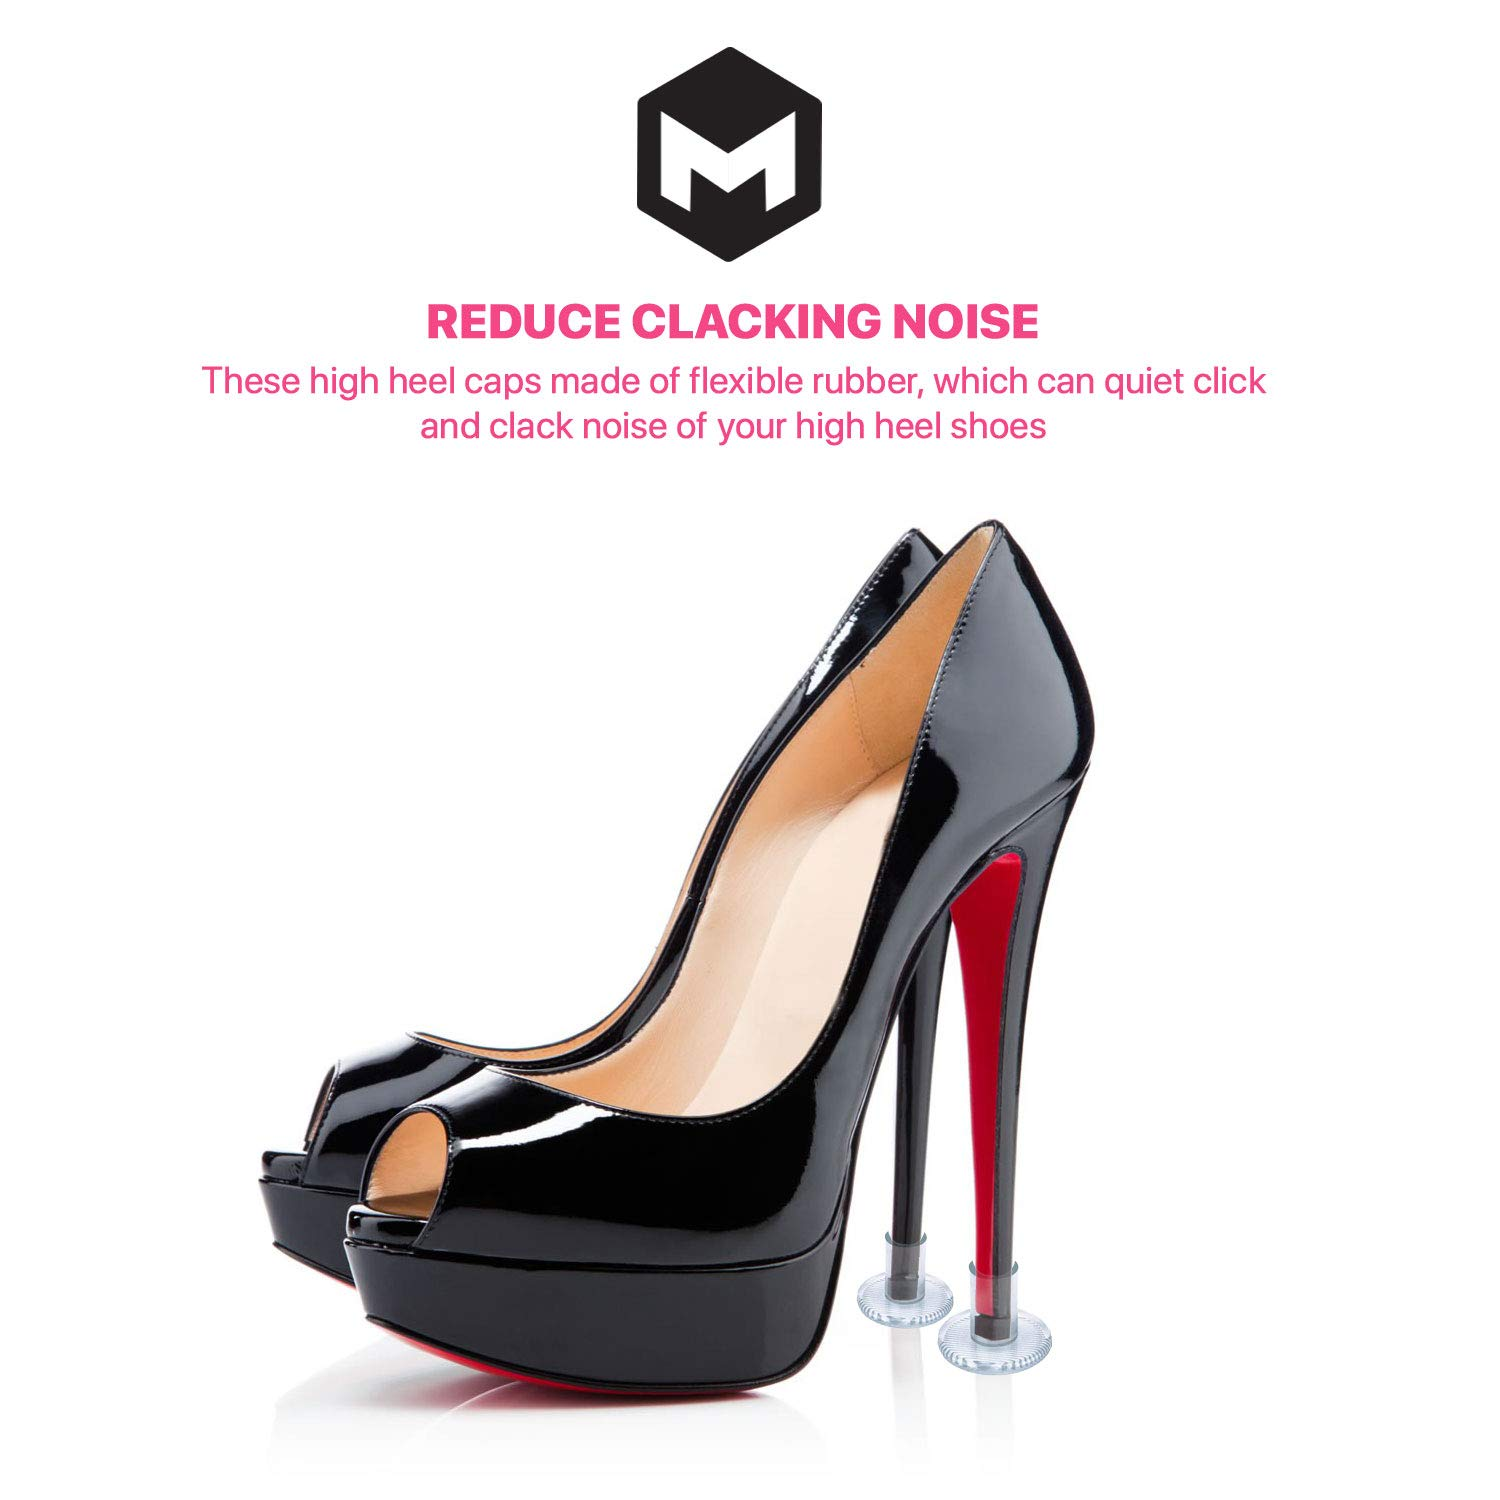 77b8101bf3 High Heel Protectors by MEGON - Heels Stopper for Women's Shoes, 6 pairs  Small/Medium/Large - Perfect for Weddings, Races, Formal Occasions - ...